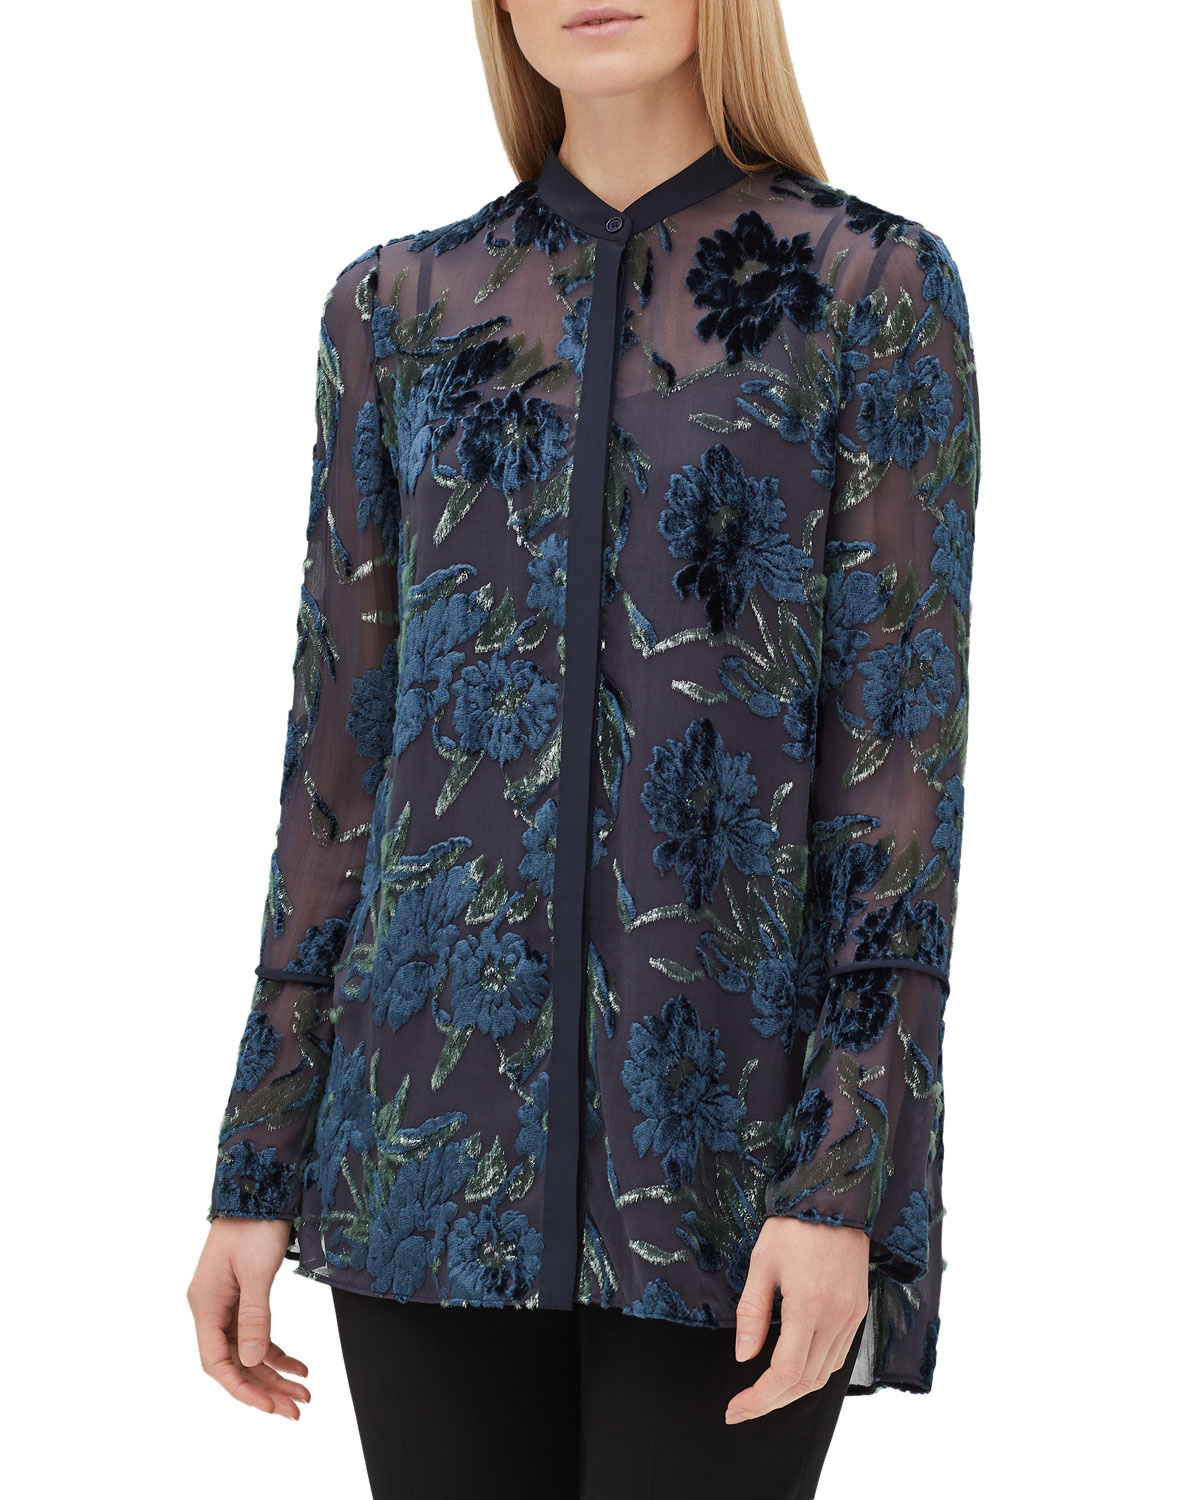 Nicolette Button-Front Long-Sleeve Floral Burnout Elite Panne Blouse in Peacock Multi